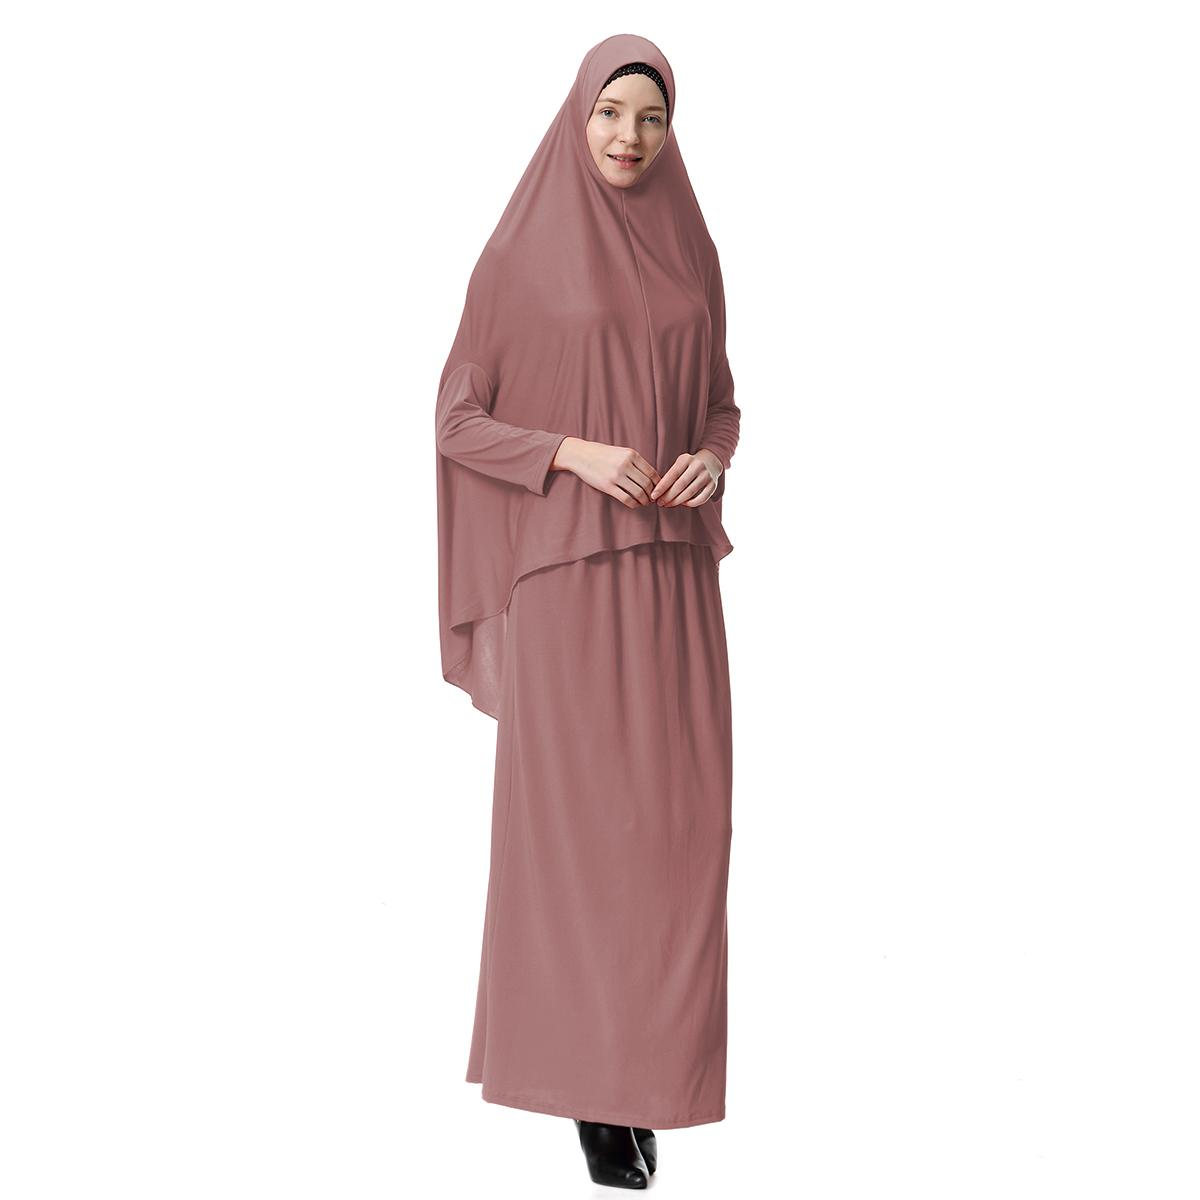 Women's Prayer Garment Clothes Set Muslim Abaya Jilbab Long Dress Arab New Hijab Skirt Islamic Clothing Middle East Dresses New